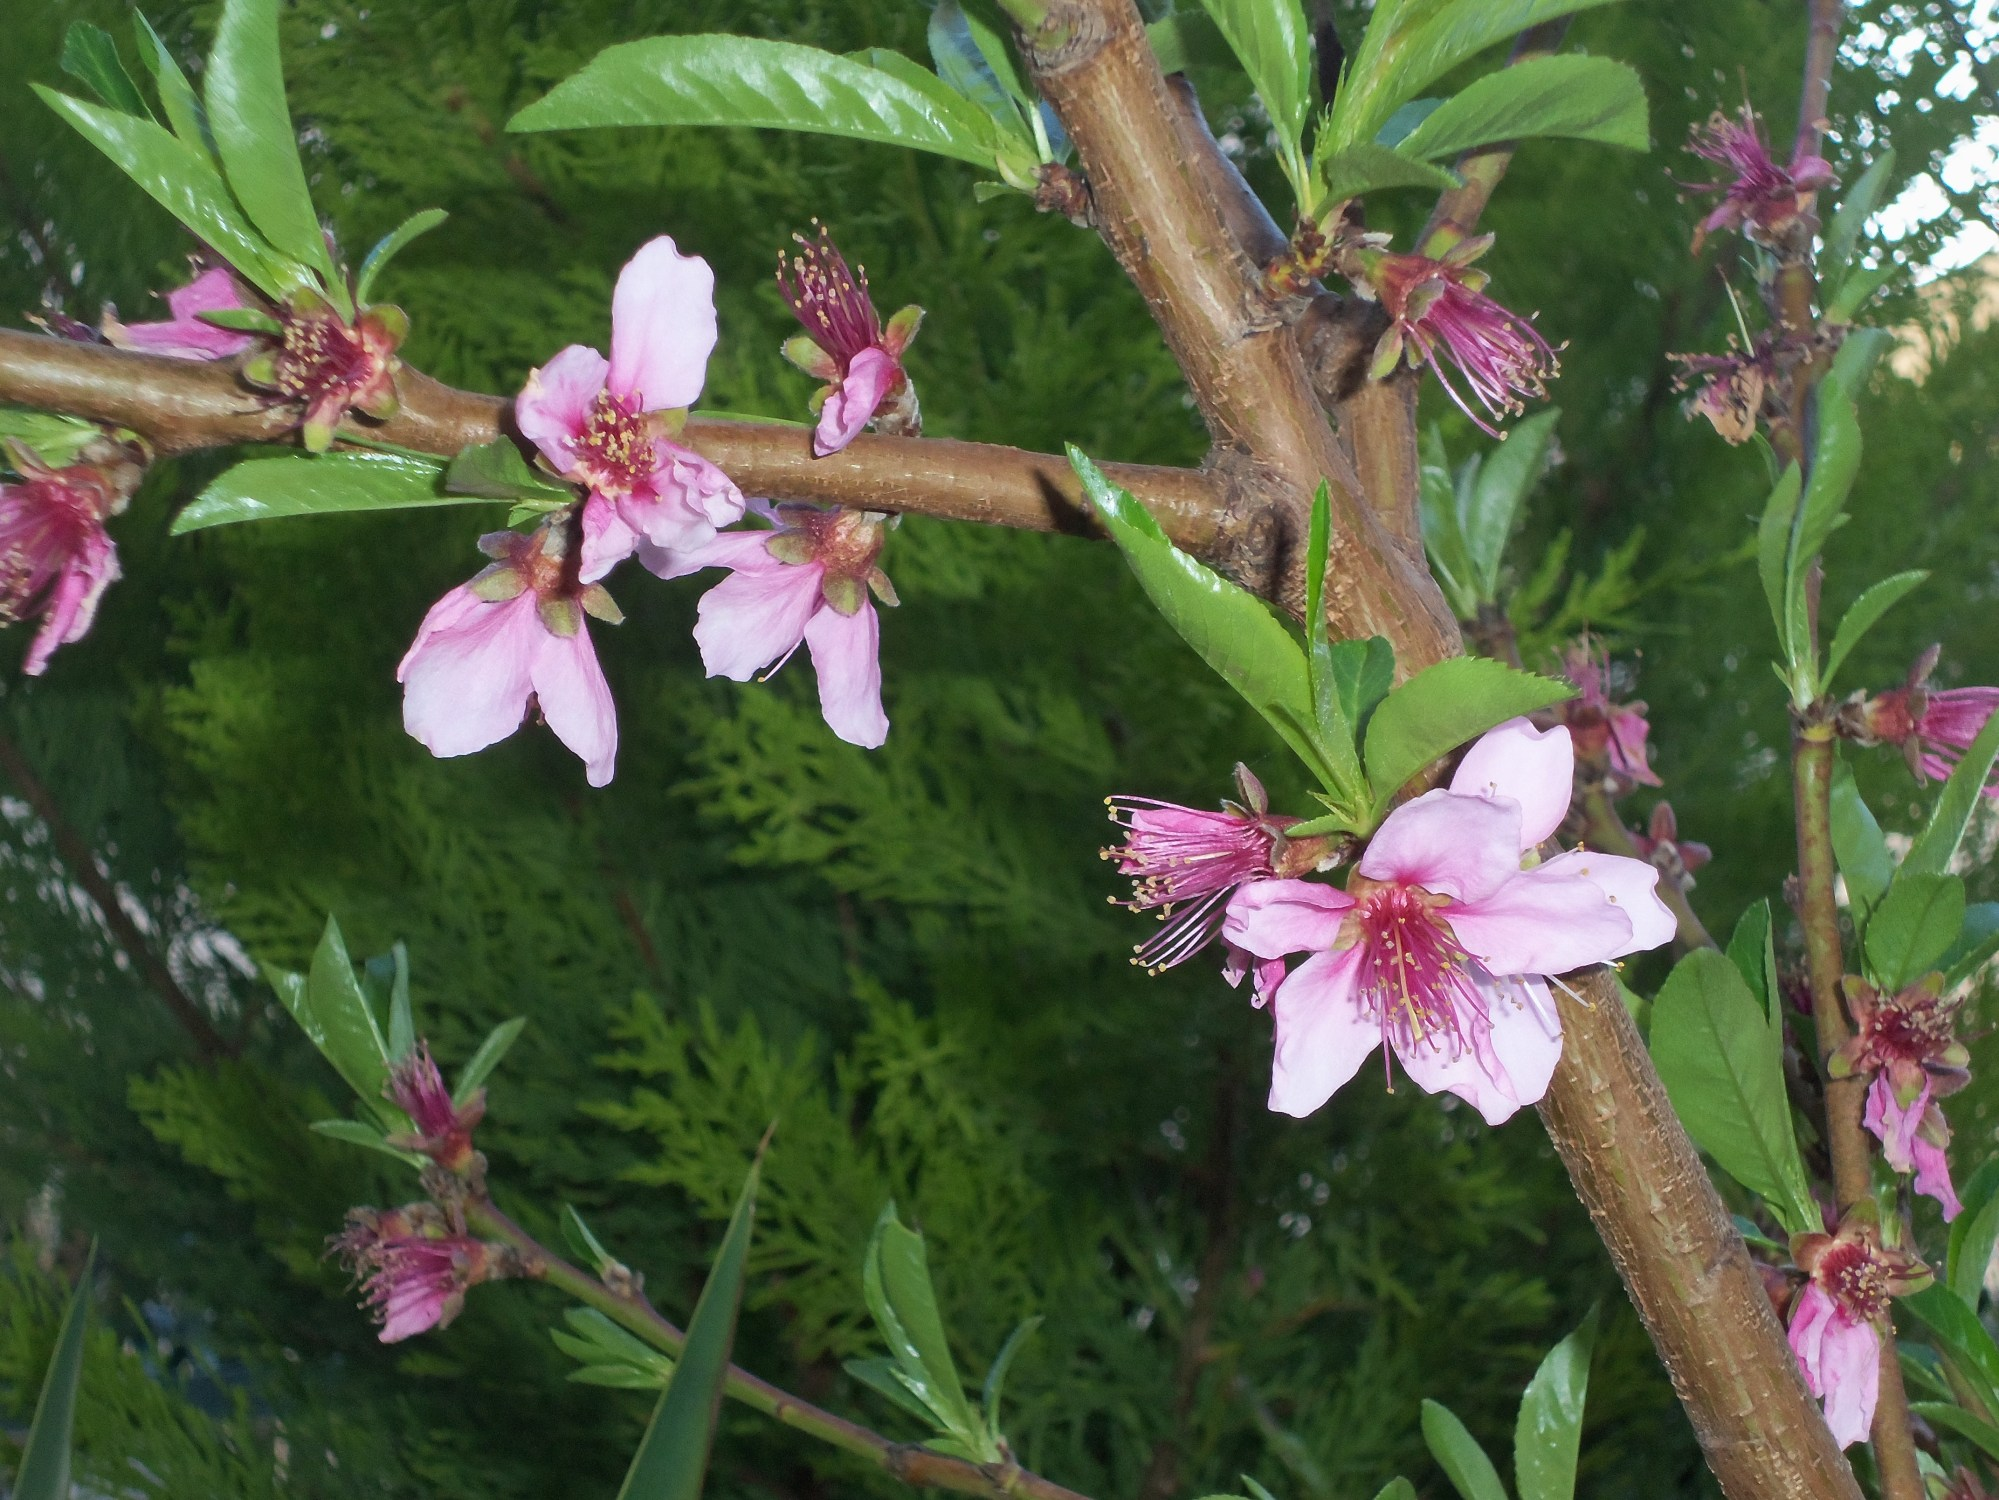 hight resolution of peach tree blossoms